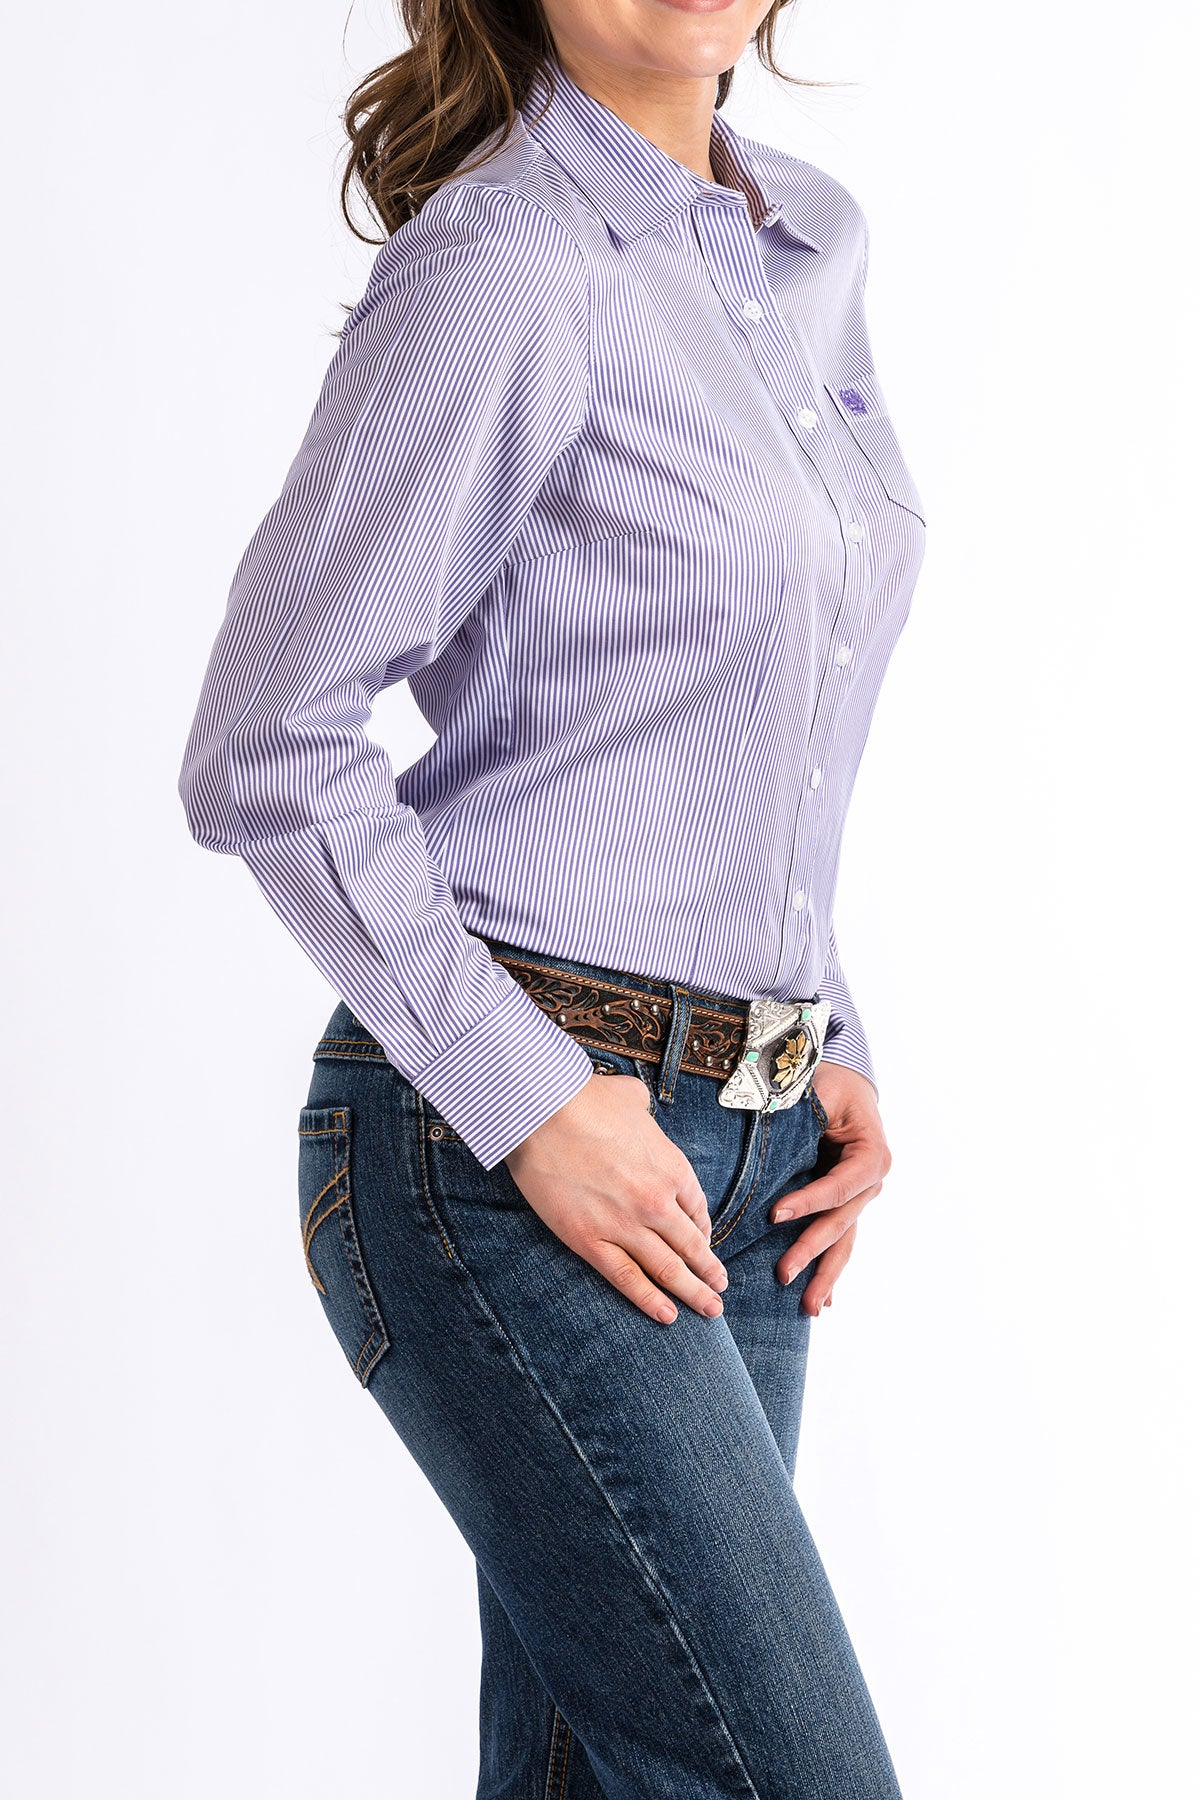 CINCH Women's Purple and White Striped Button-Down Western Shirt